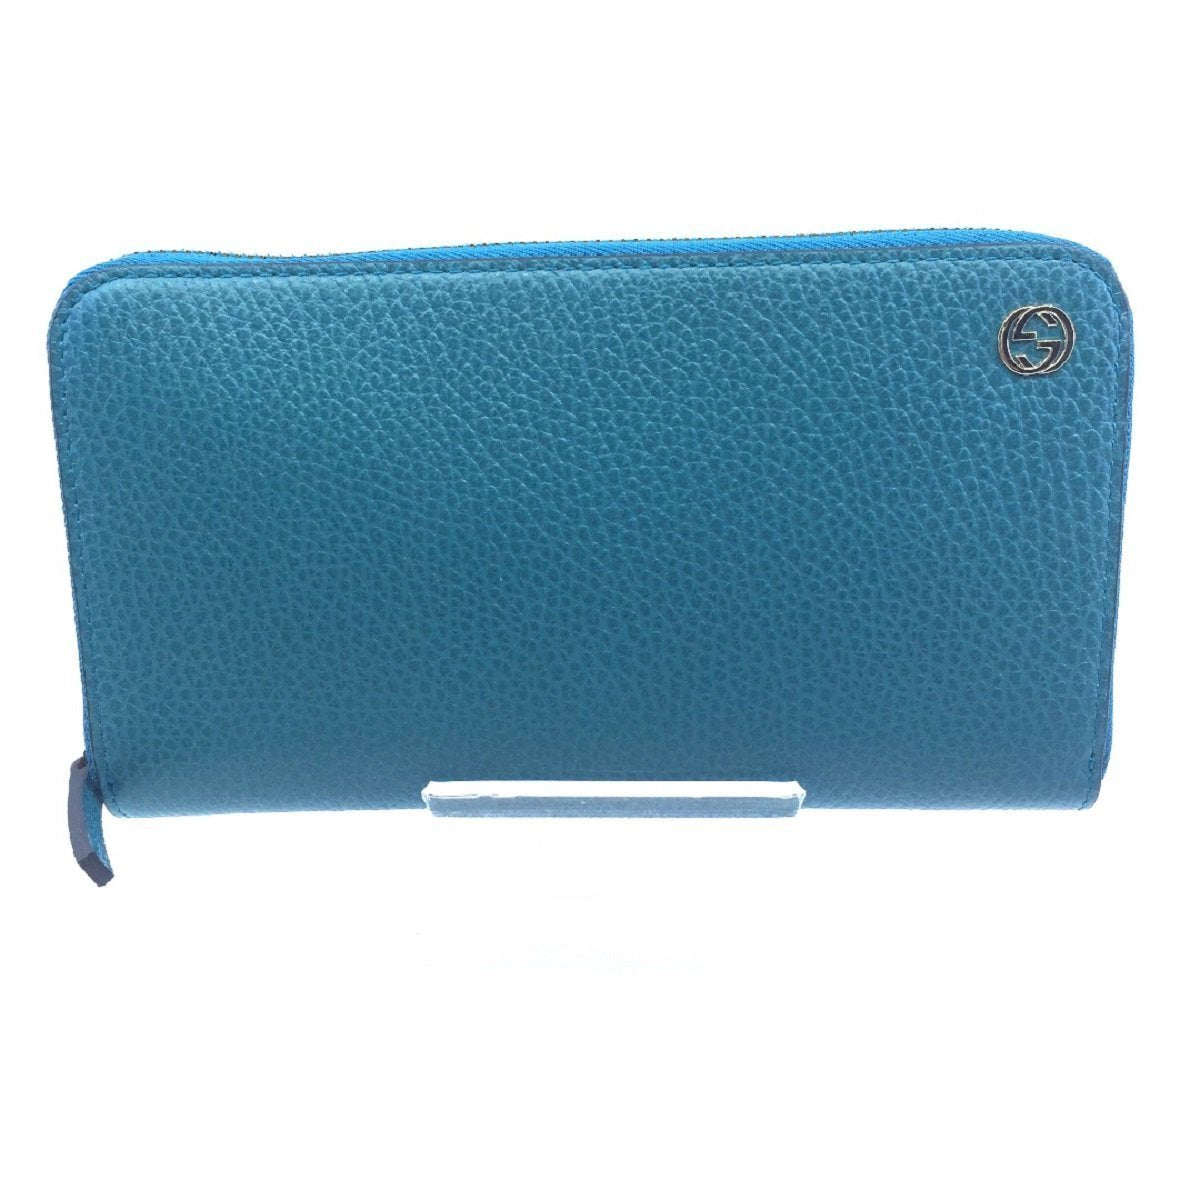 Gucci Cobalt Blue Teal Pebbled Leather Zip Around Wallet GG Charm Logo 449347